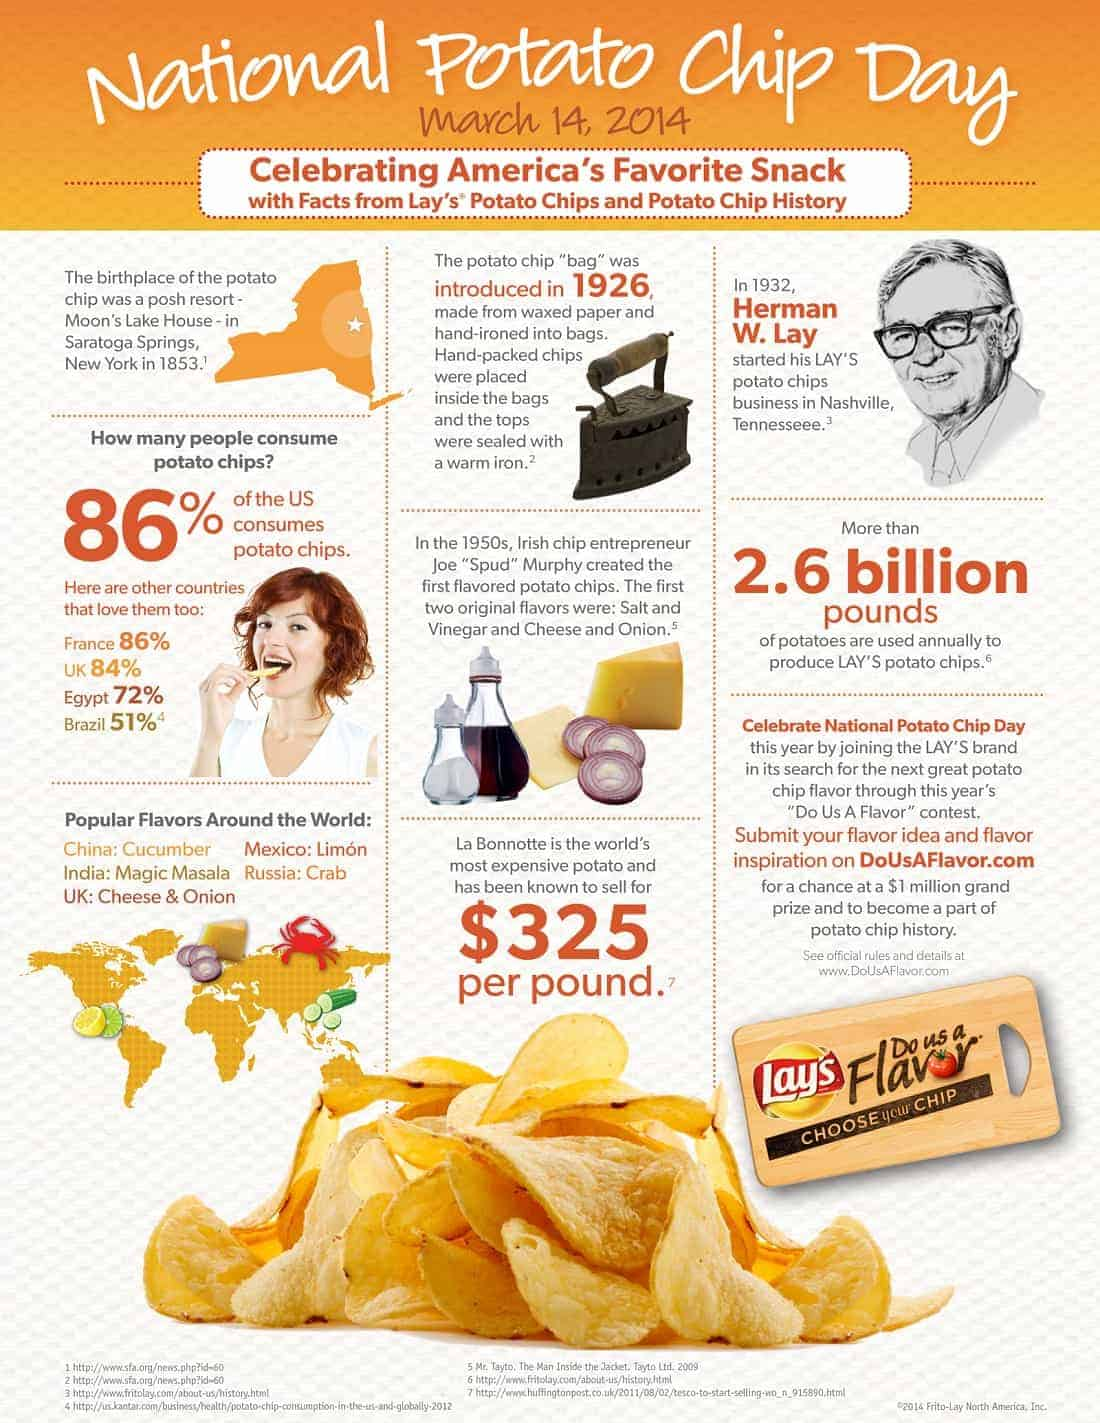 Potato Chips facts